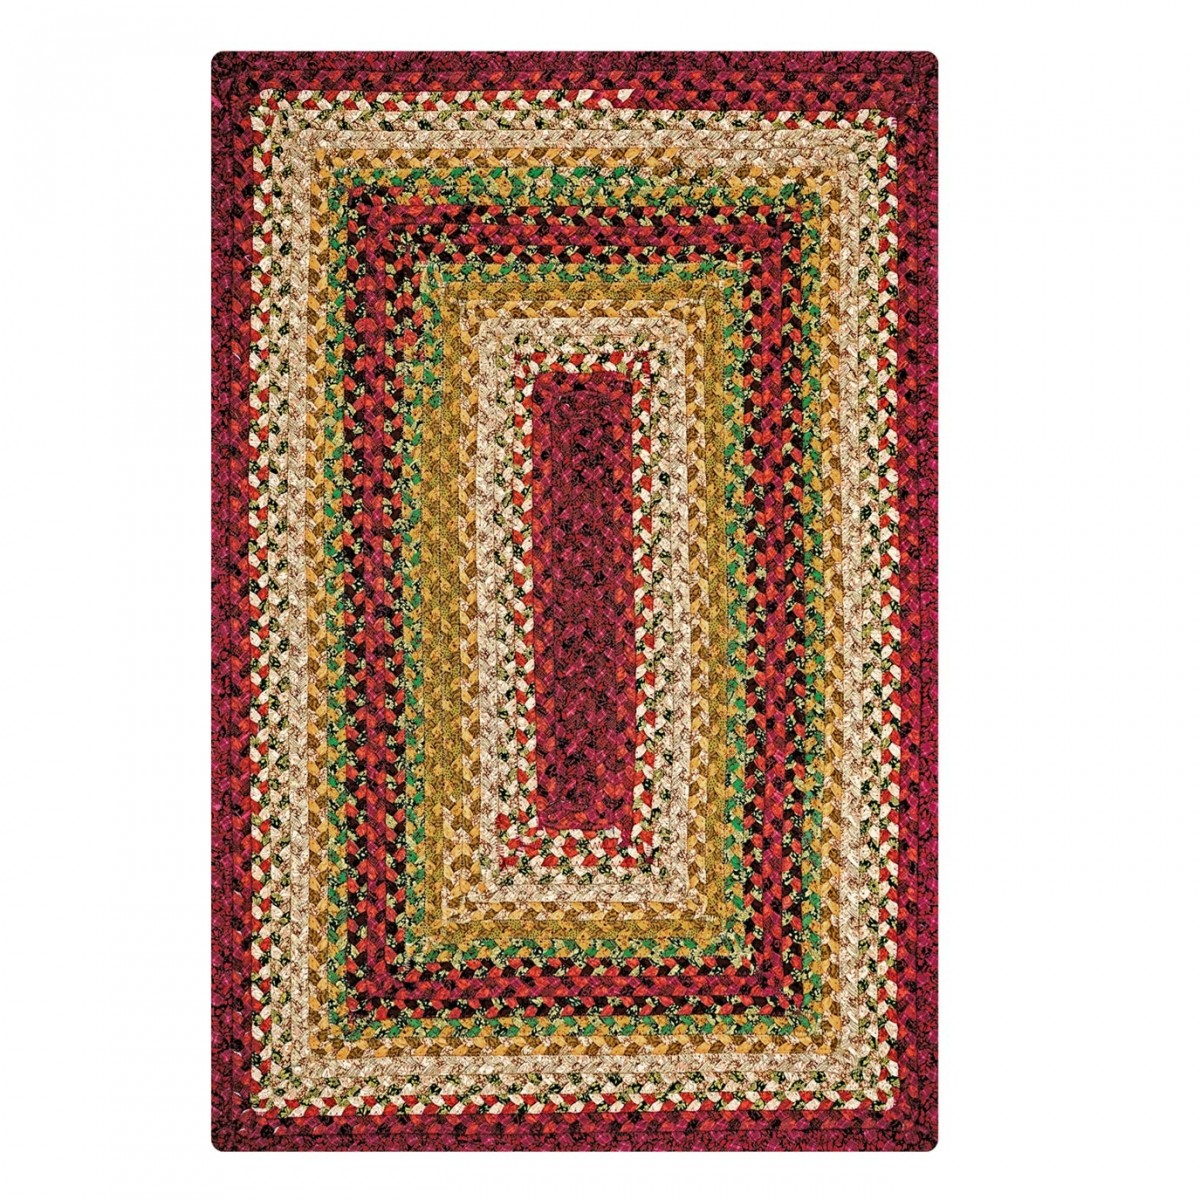 Buy Santa Fe Sunrise Multi Color Cotton Braided Rugs